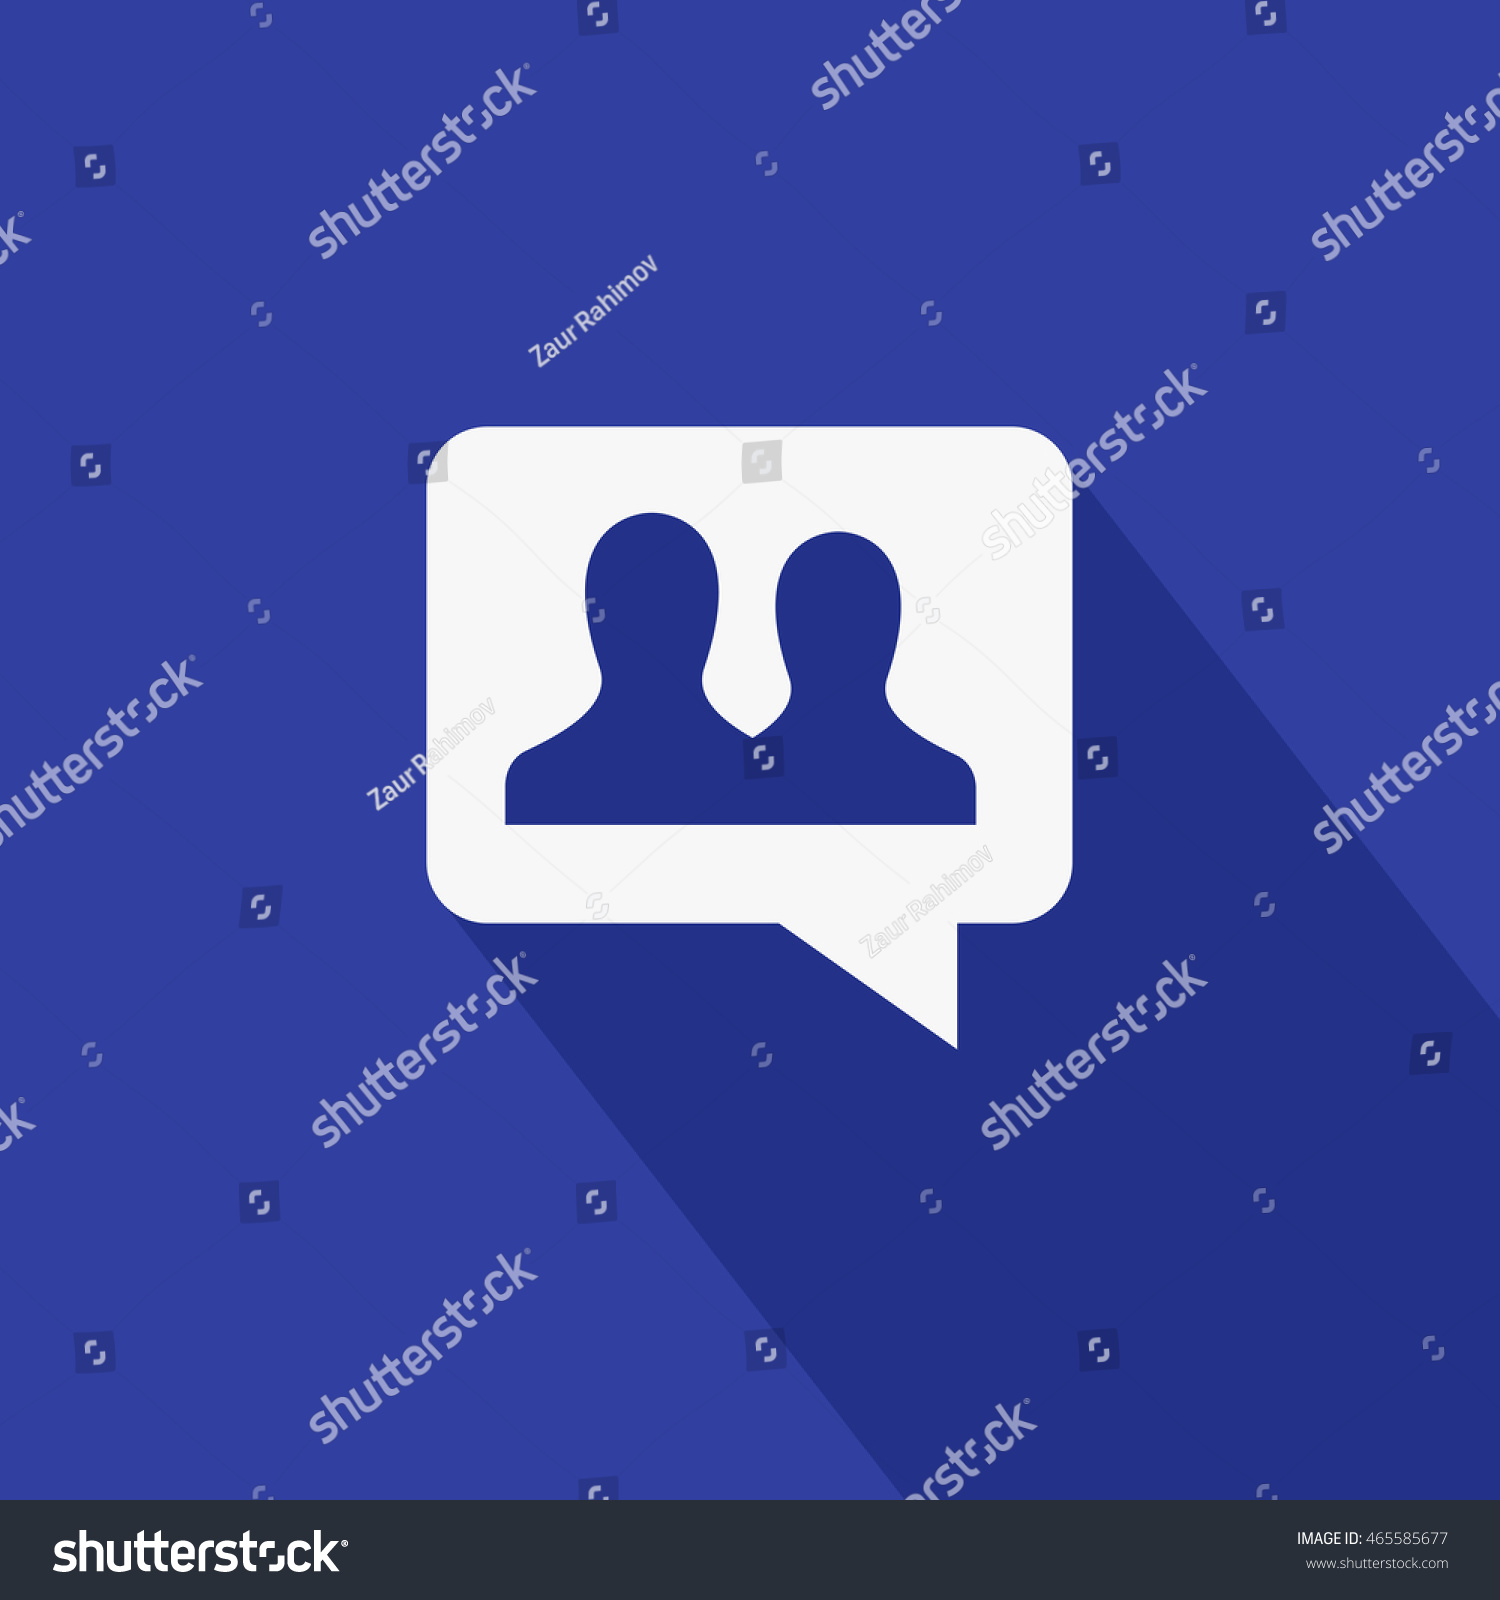 Fb Icon Person Wiring Diagrams Caig Cw100p Circuit Writer Conductive Ink Pen Facebook Friends User Interface Vector Stock Royalty Rh Shutterstock Com Myspace